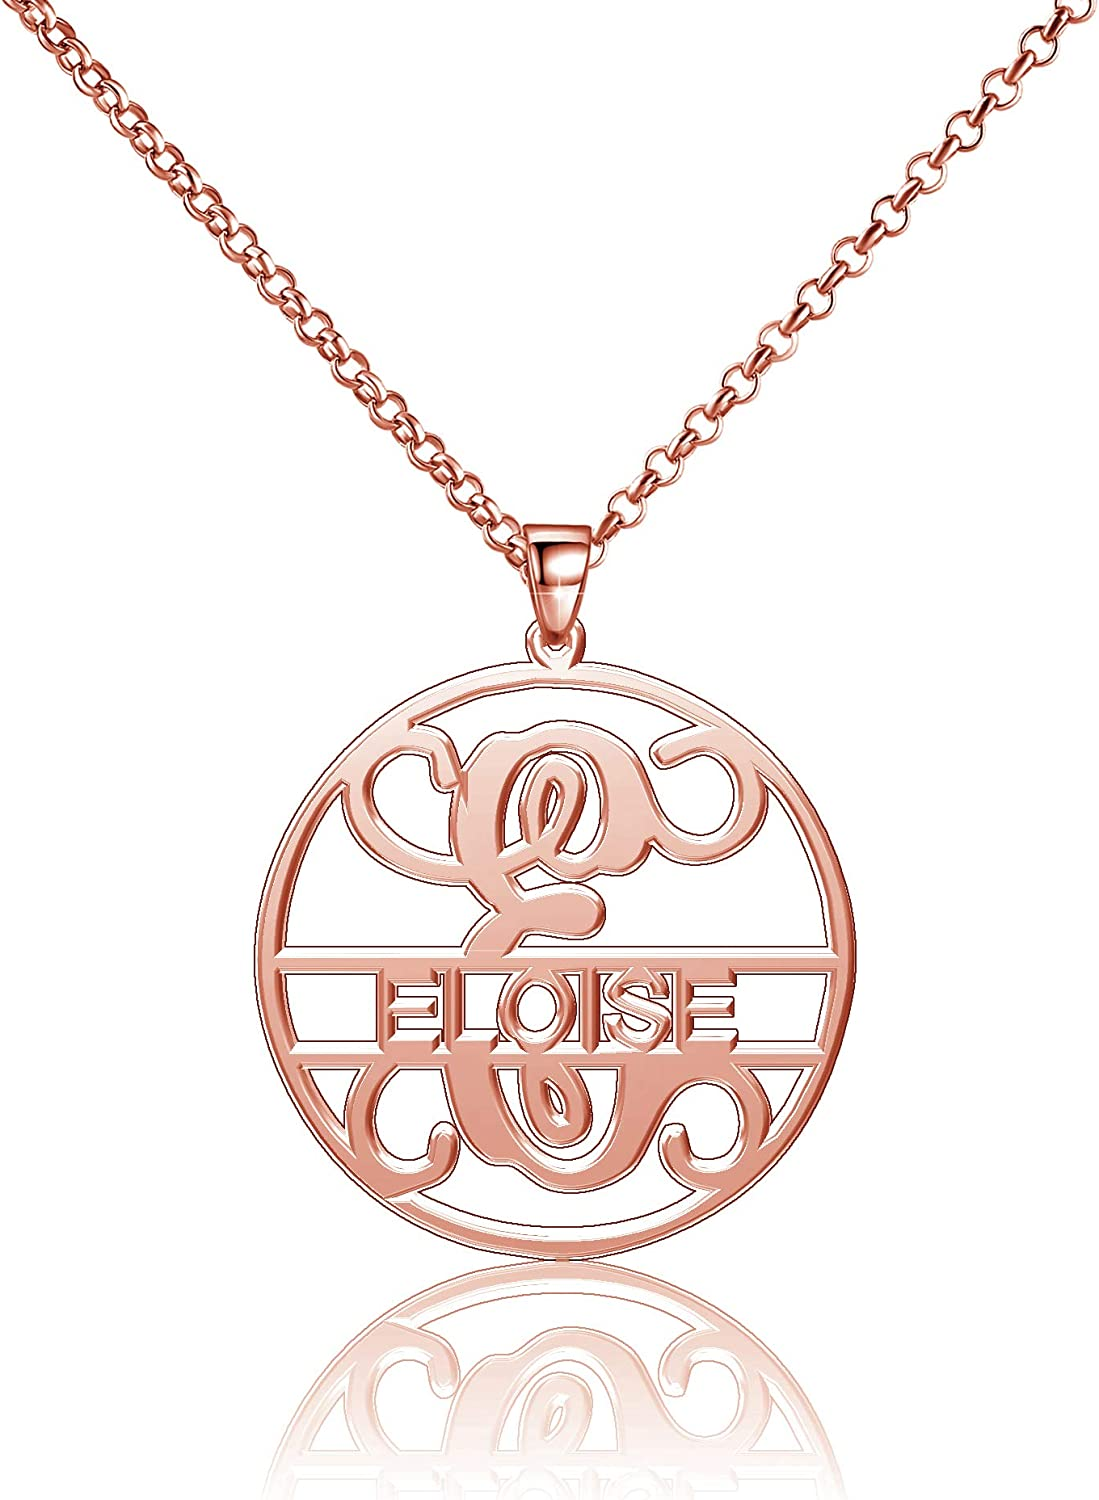 Moonlight Collections Eloise Necklace Monogrammed Necklace Silver 925 Sterling Silver